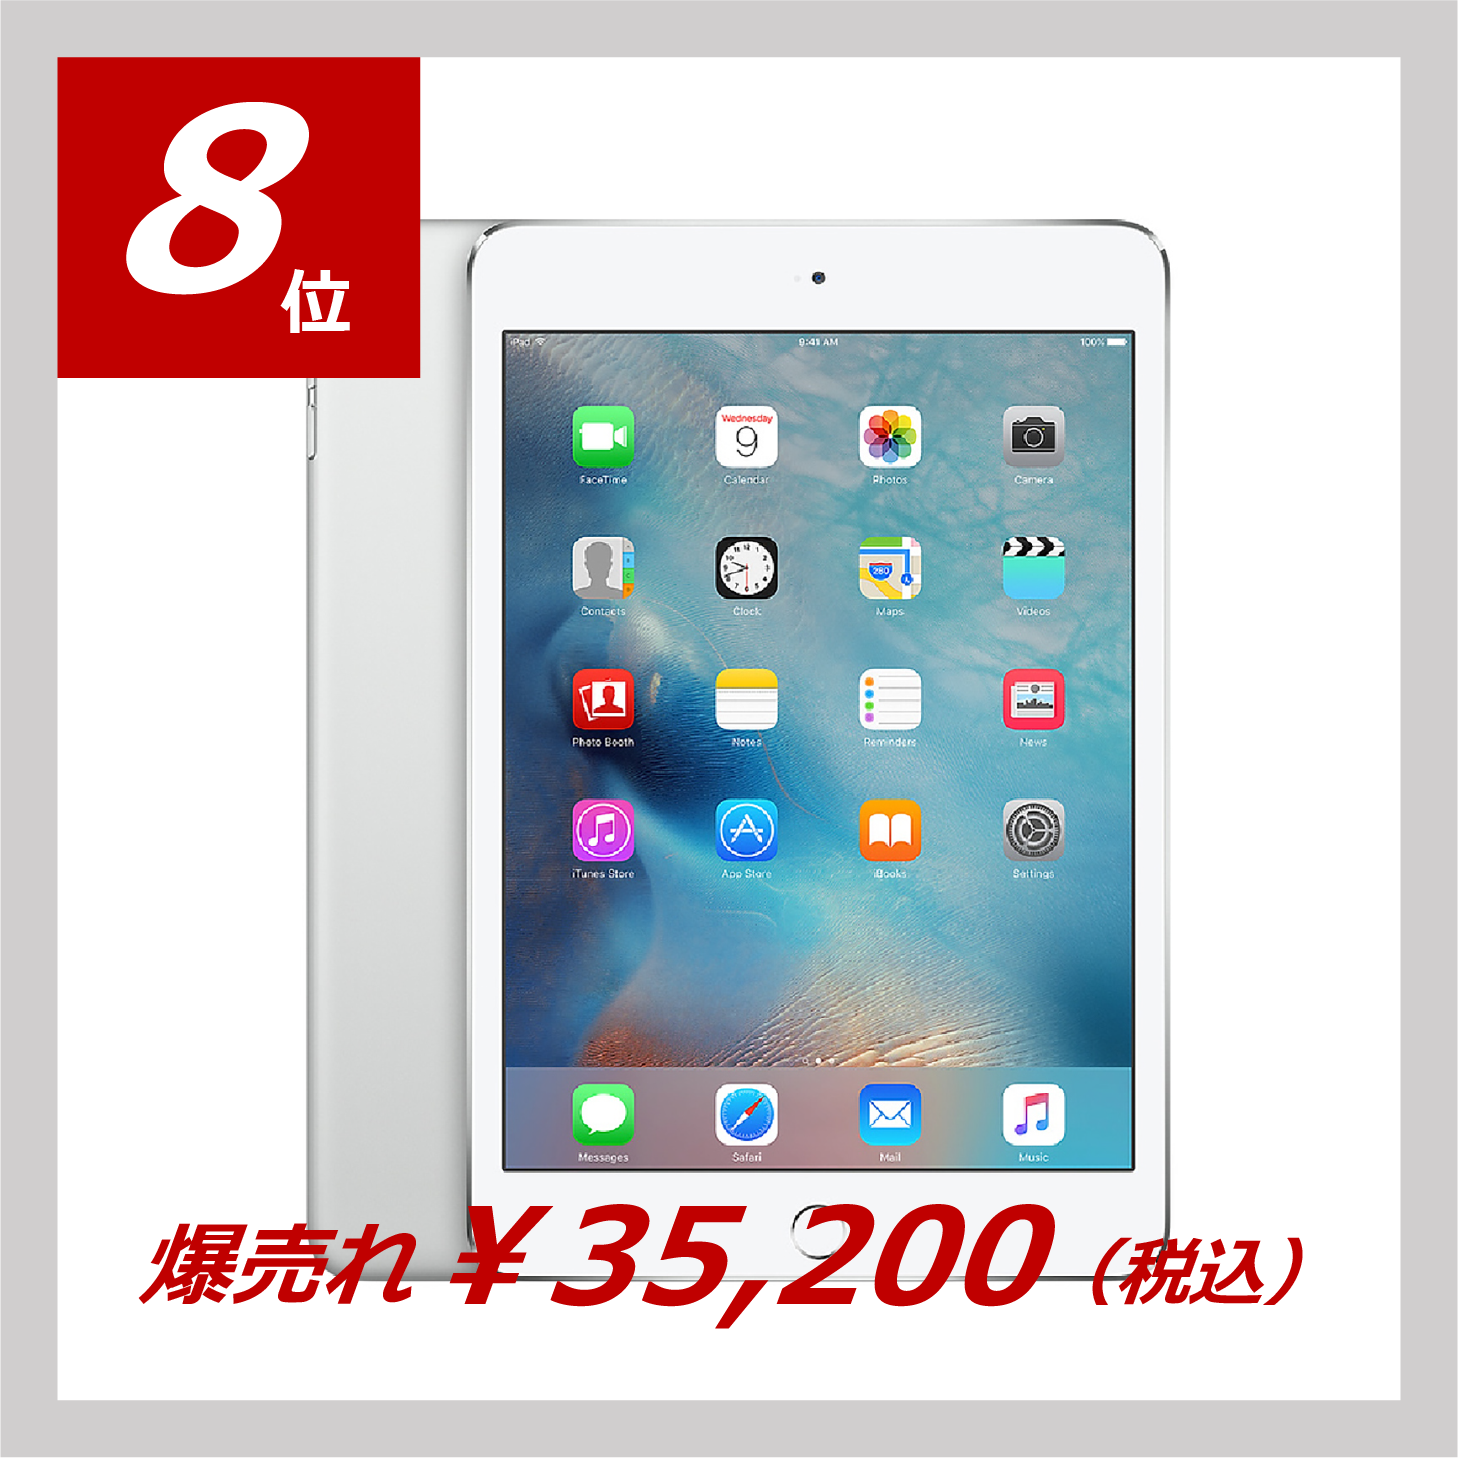 Apple iPad mini 4 E753